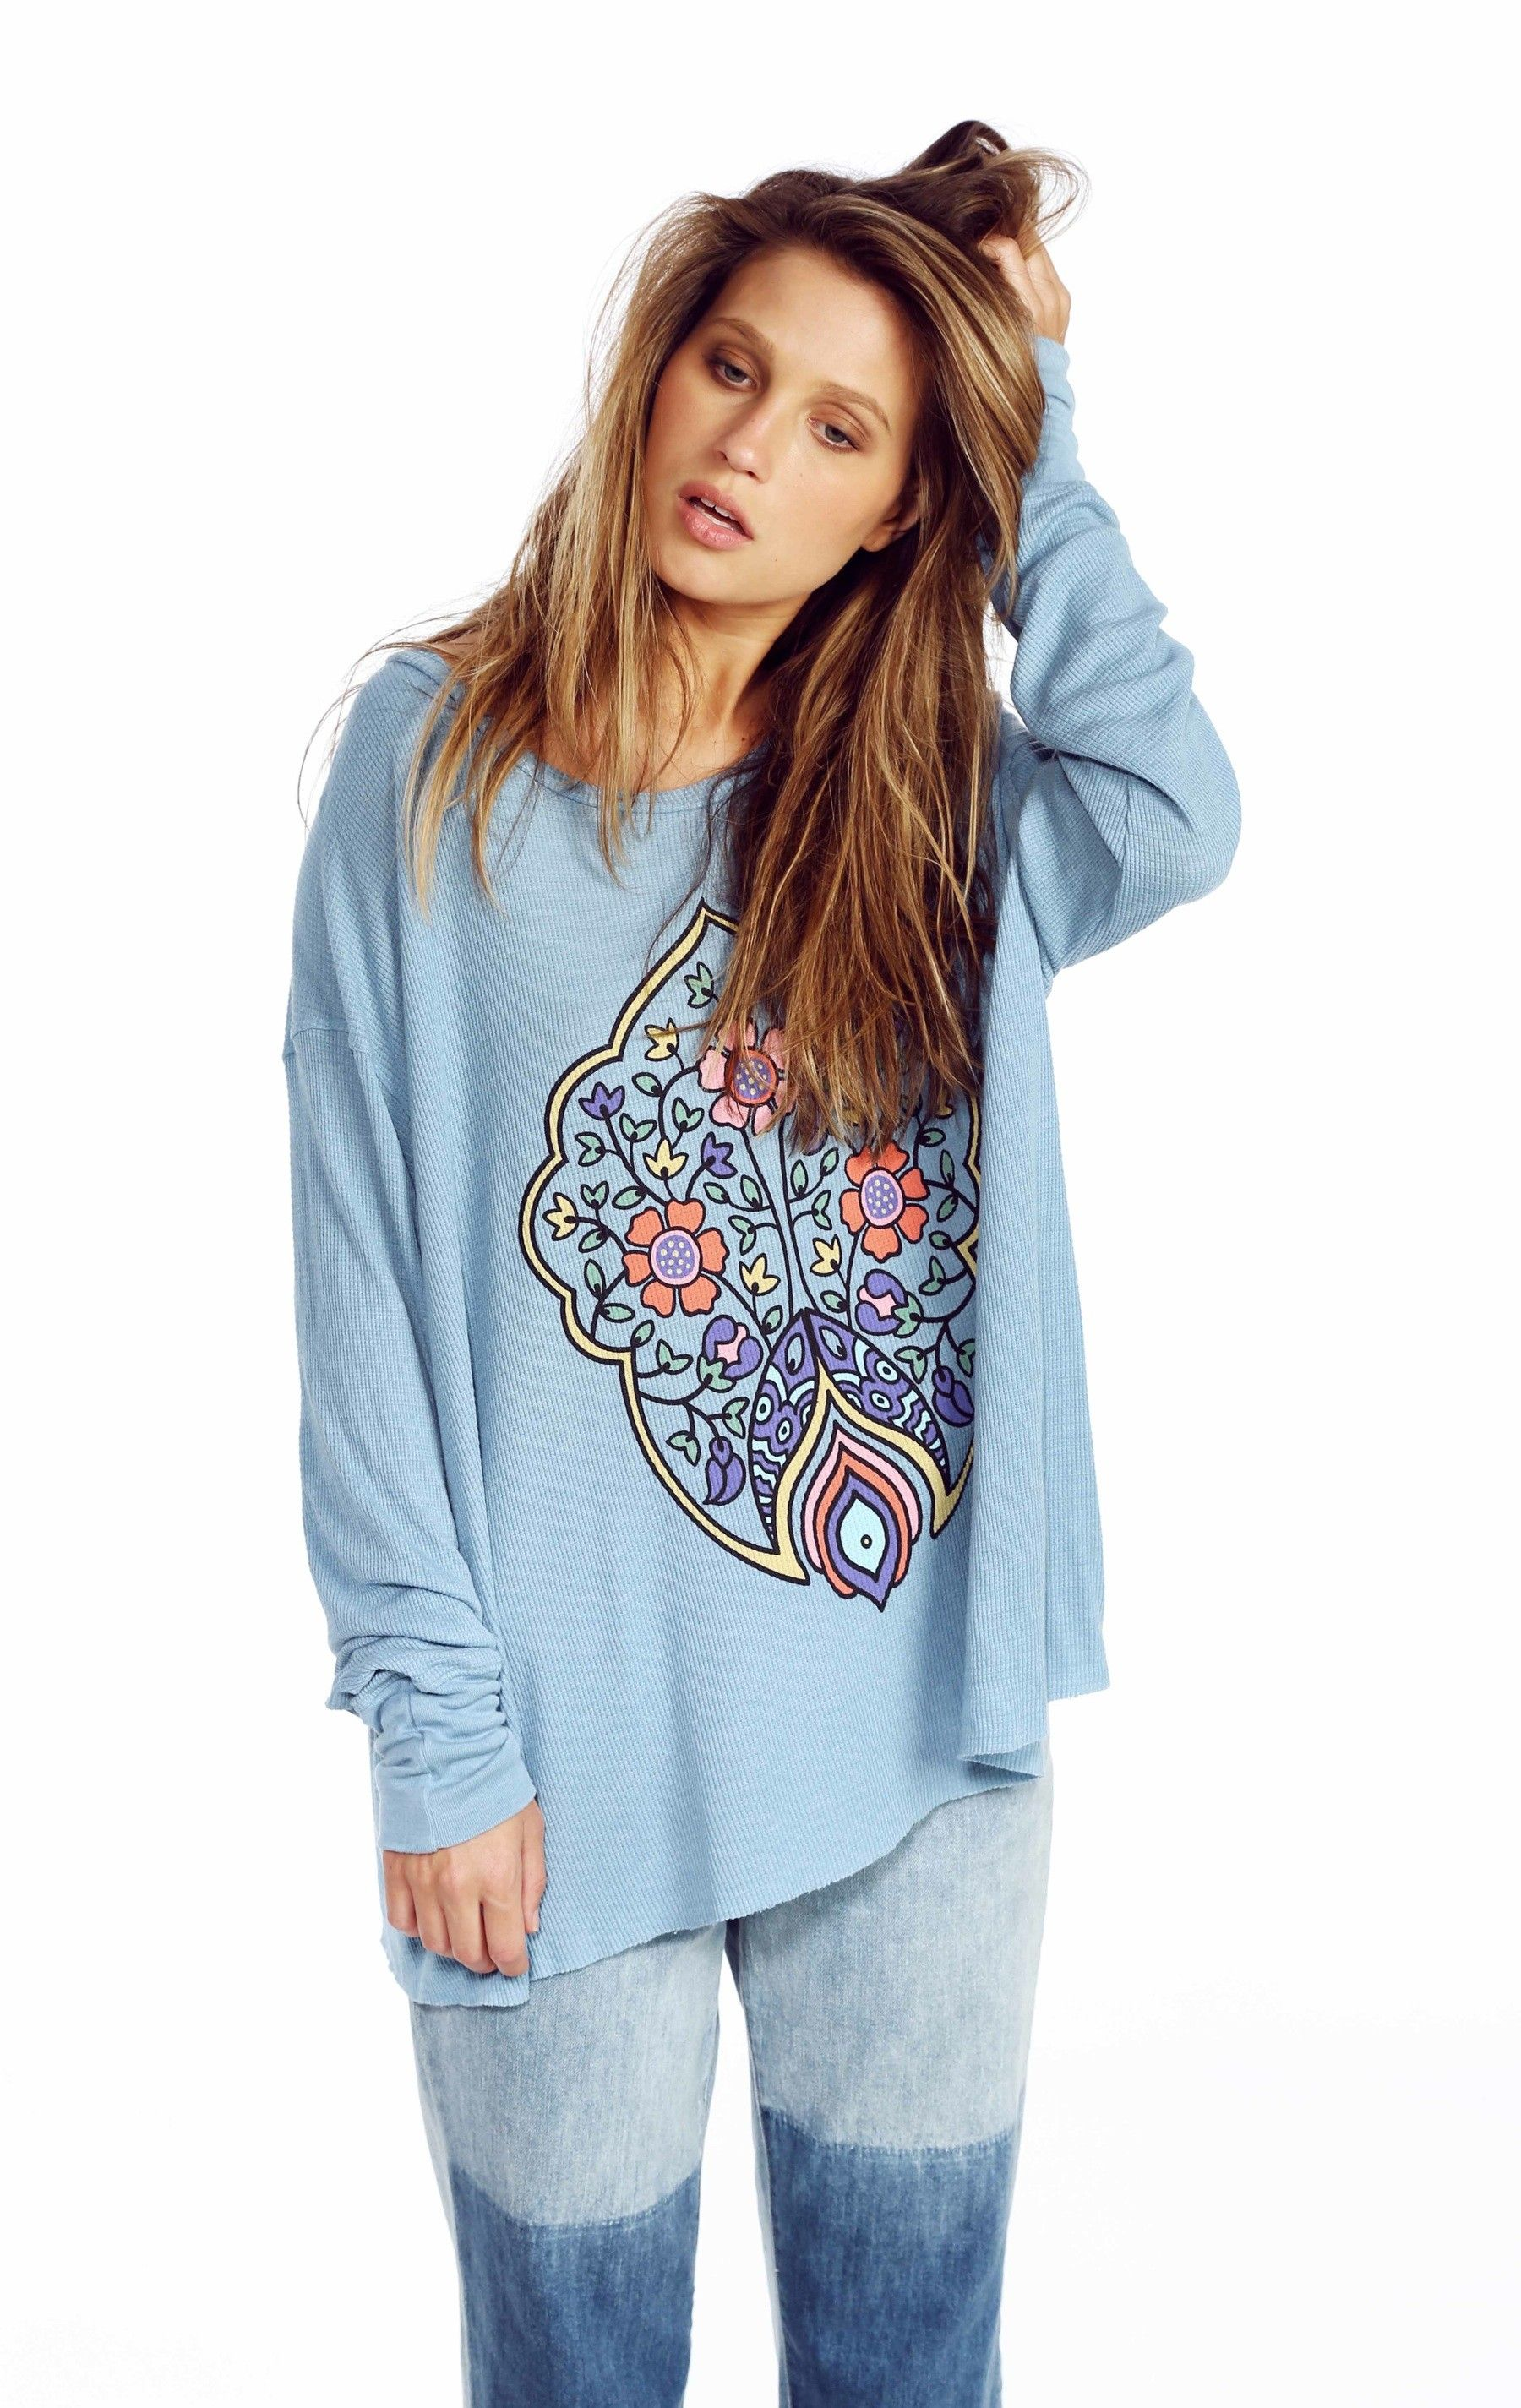 The Wildfox Moroccan Motif Effortless Thermal